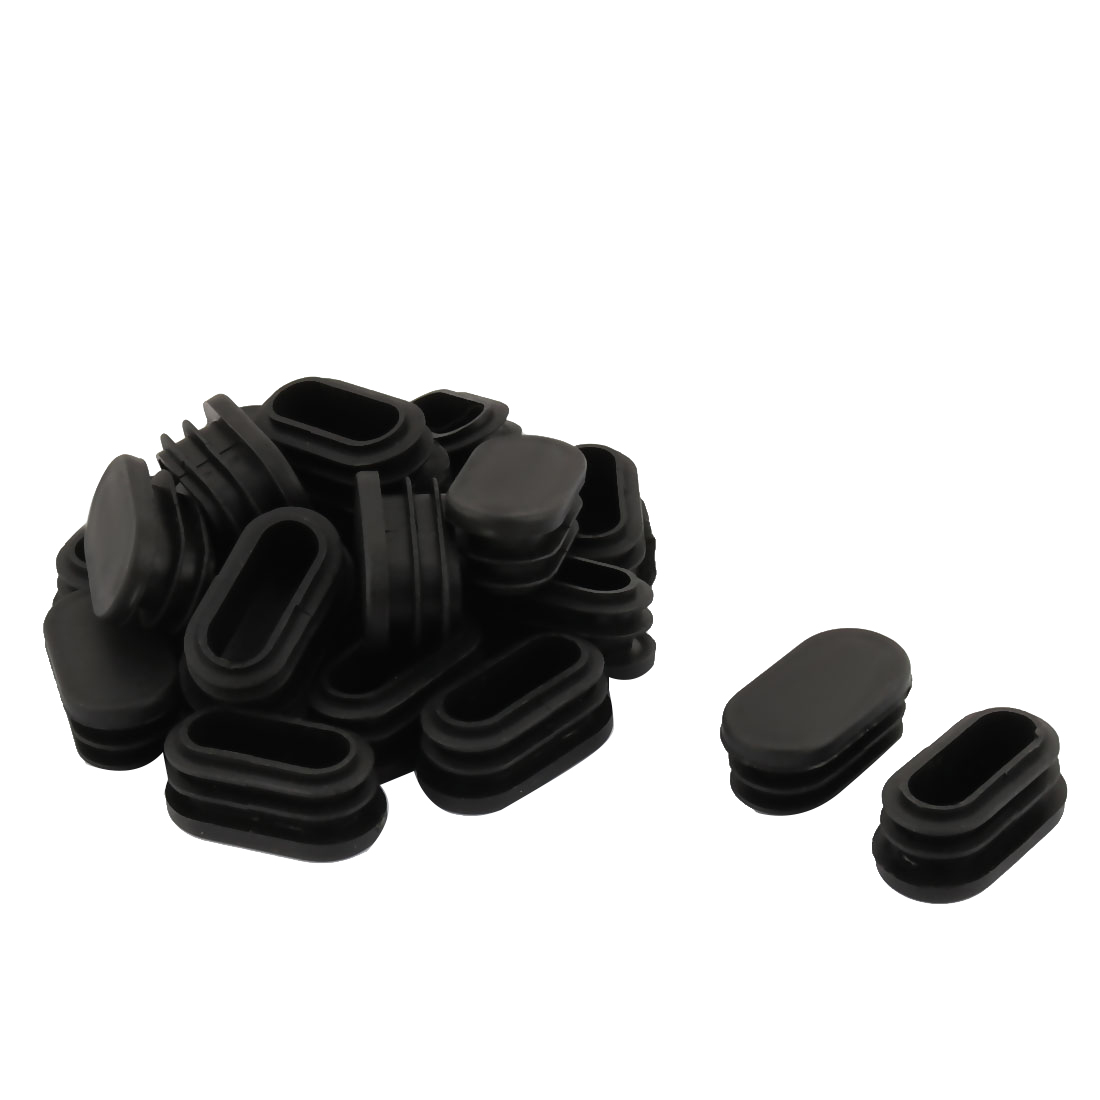 Plastic Oval Design Tube Insert End Blanking Cover Cap Black 40 x 20mm 20pcs